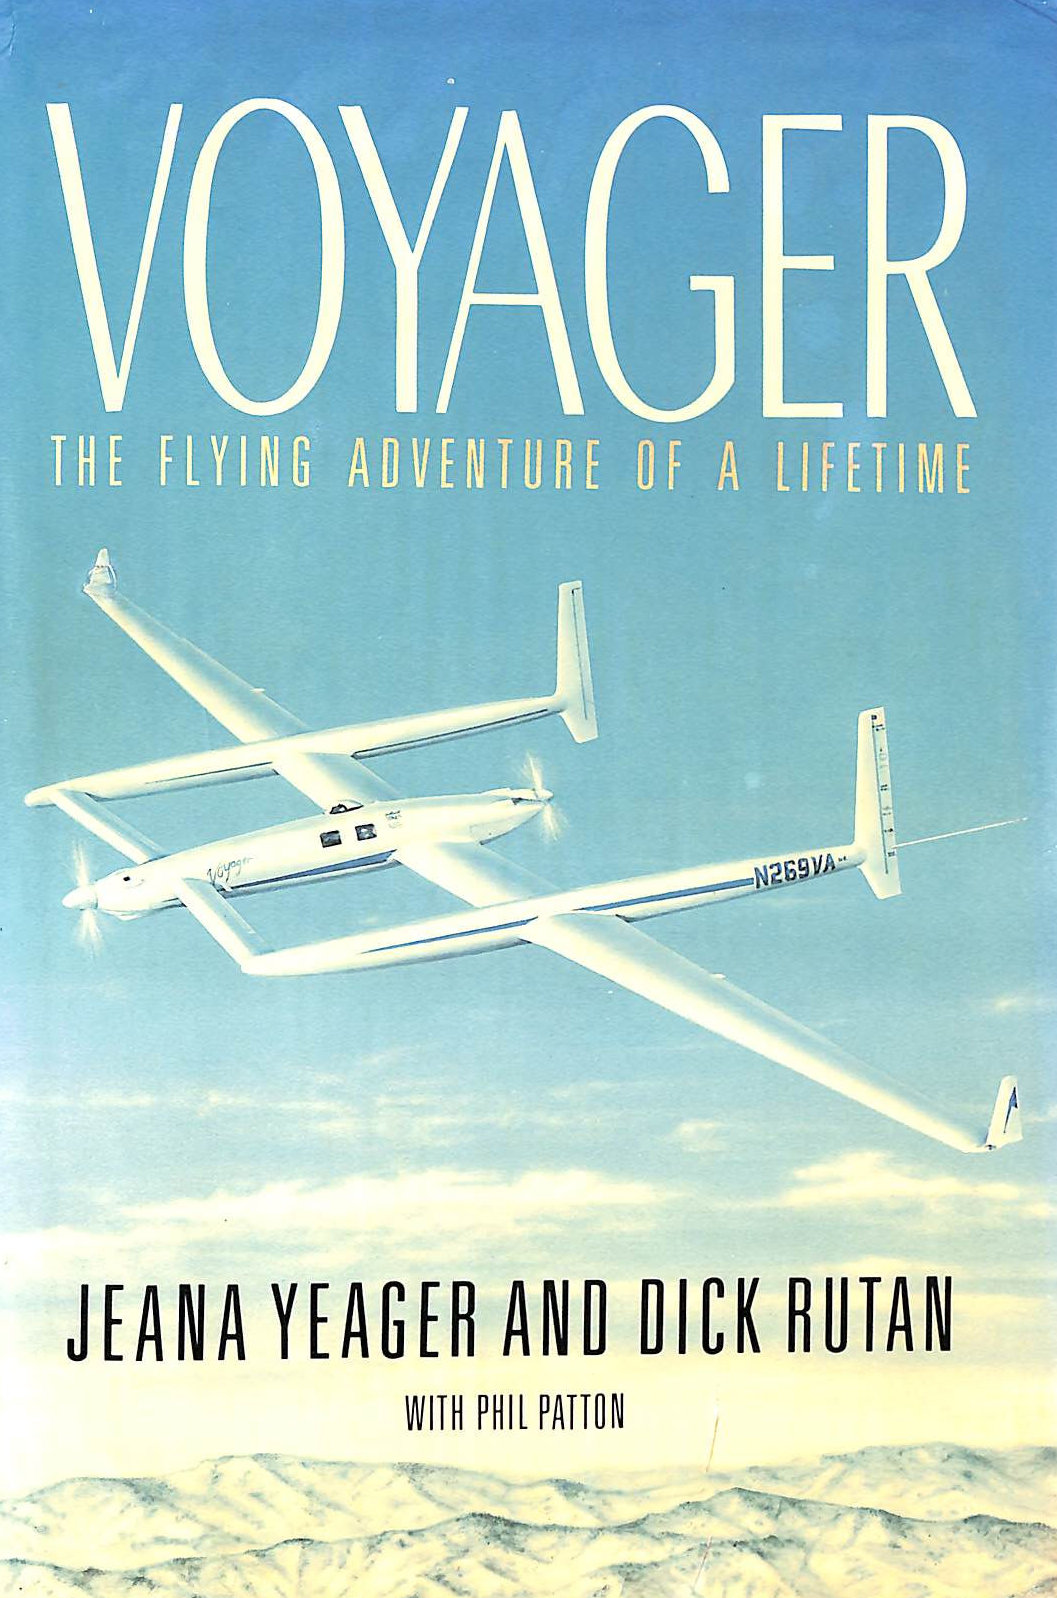 Image for Voyager: The Flying Adventure of a Lifetime